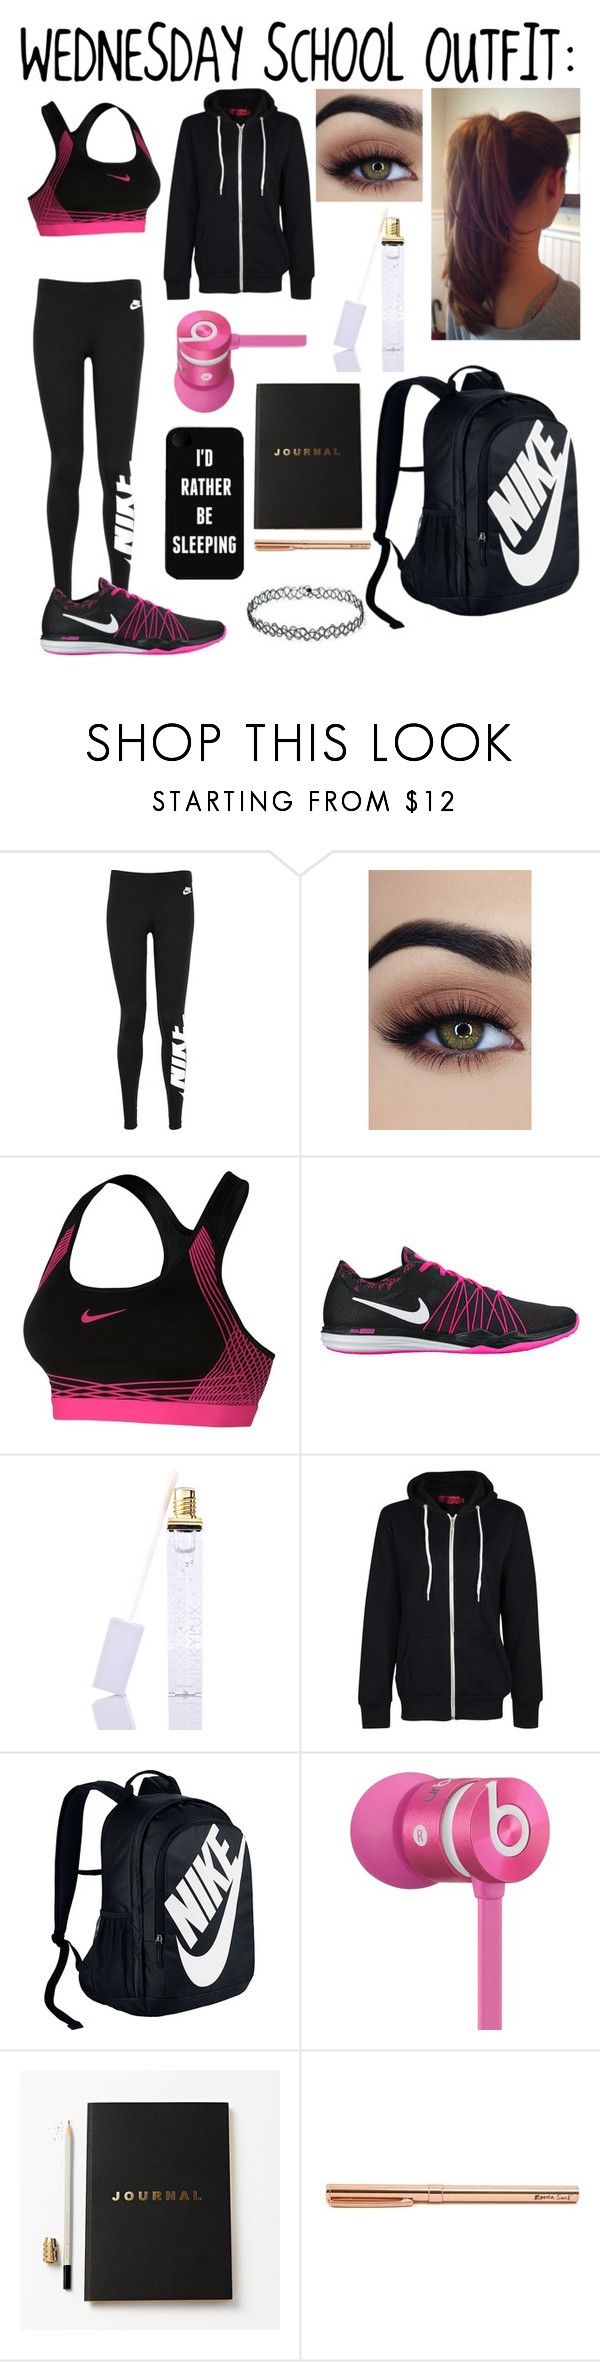 """Wednesday school outfit! :3"" by yourlittledemonx3 on Polyvore featuring NIKE, Winky Lux, Boohoo, Beats by Dr. Dre and Katie Leamon"